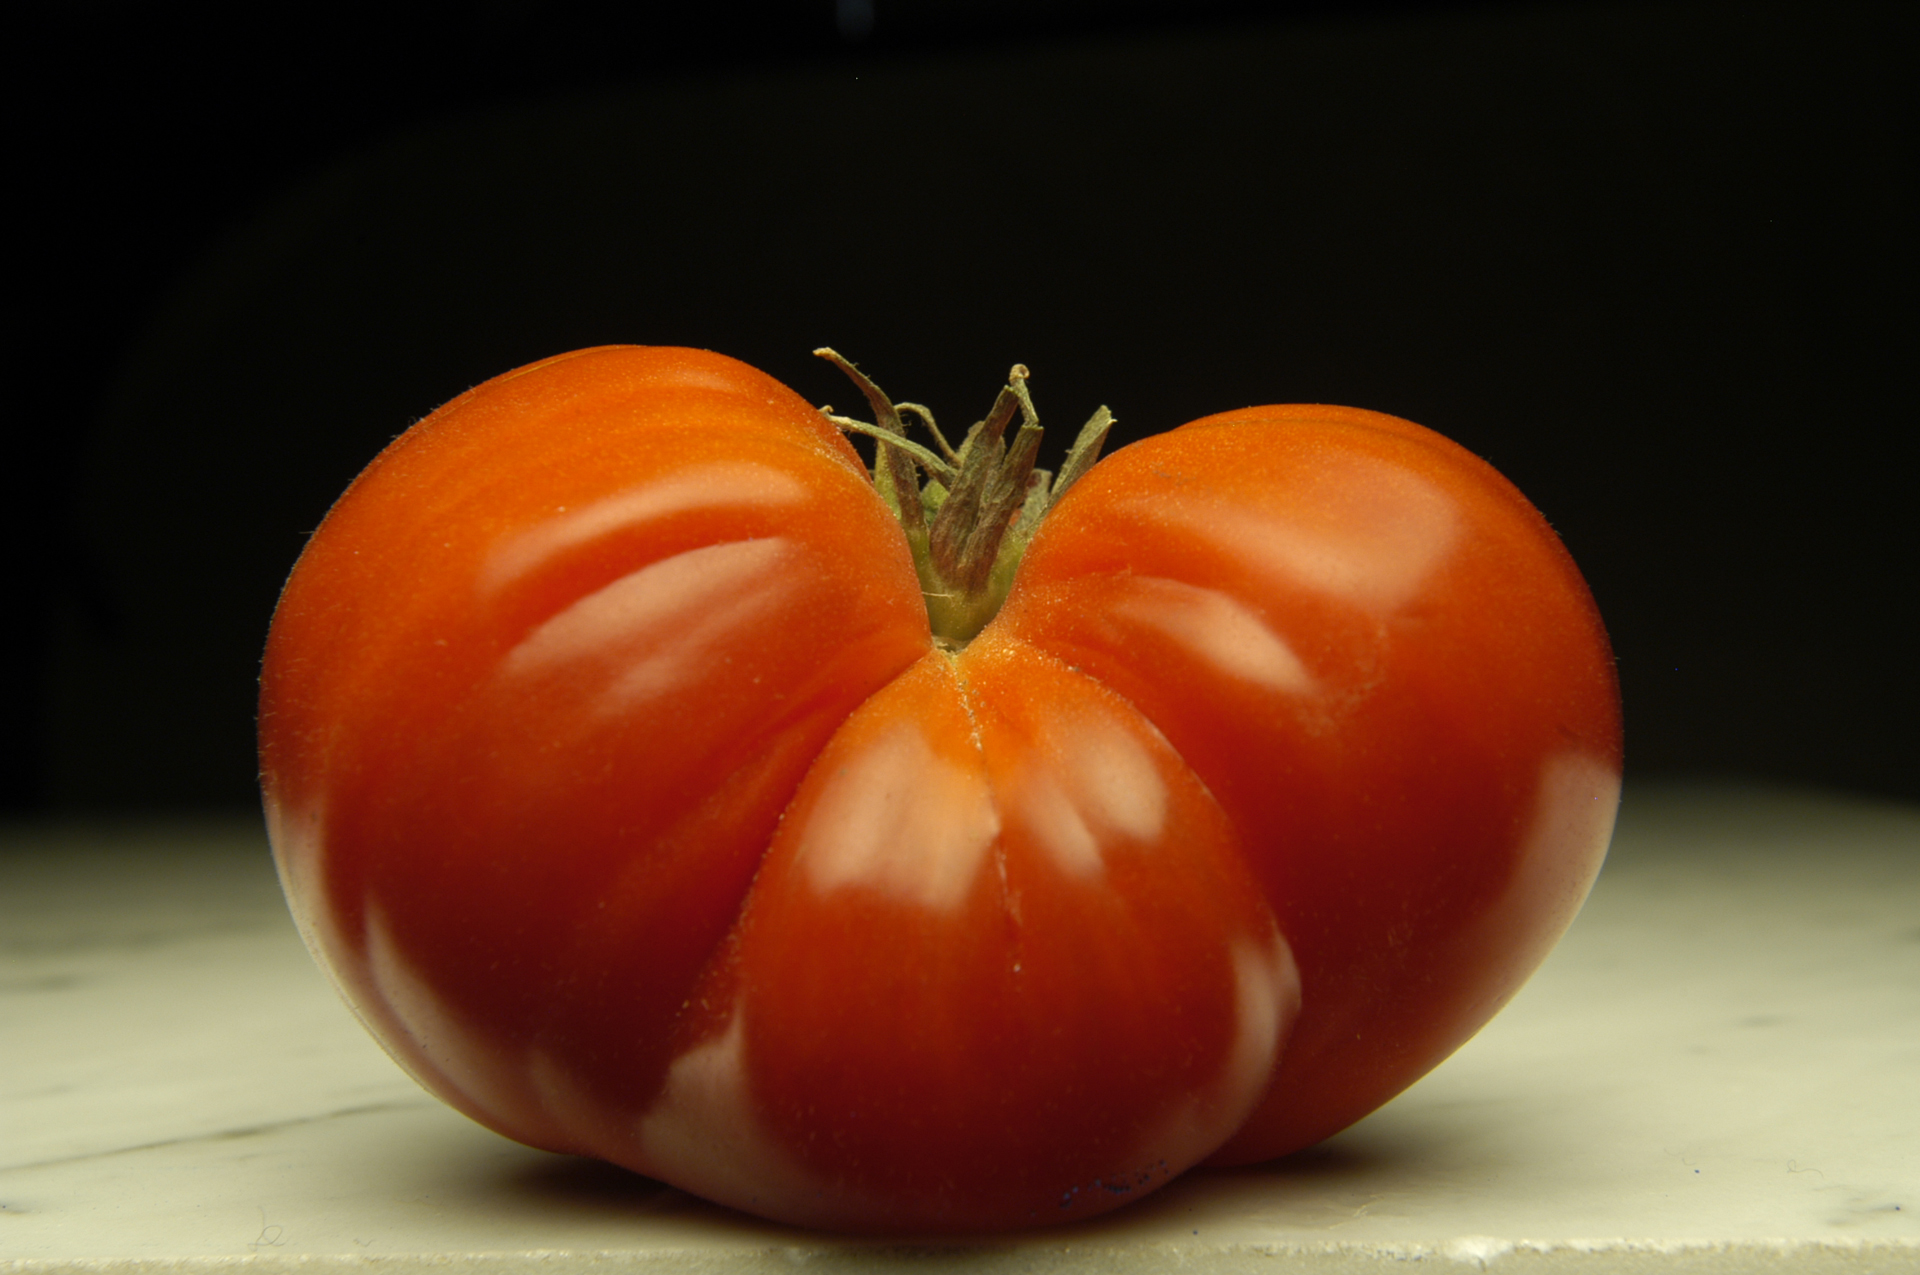 Big tomato dark backgrdYT